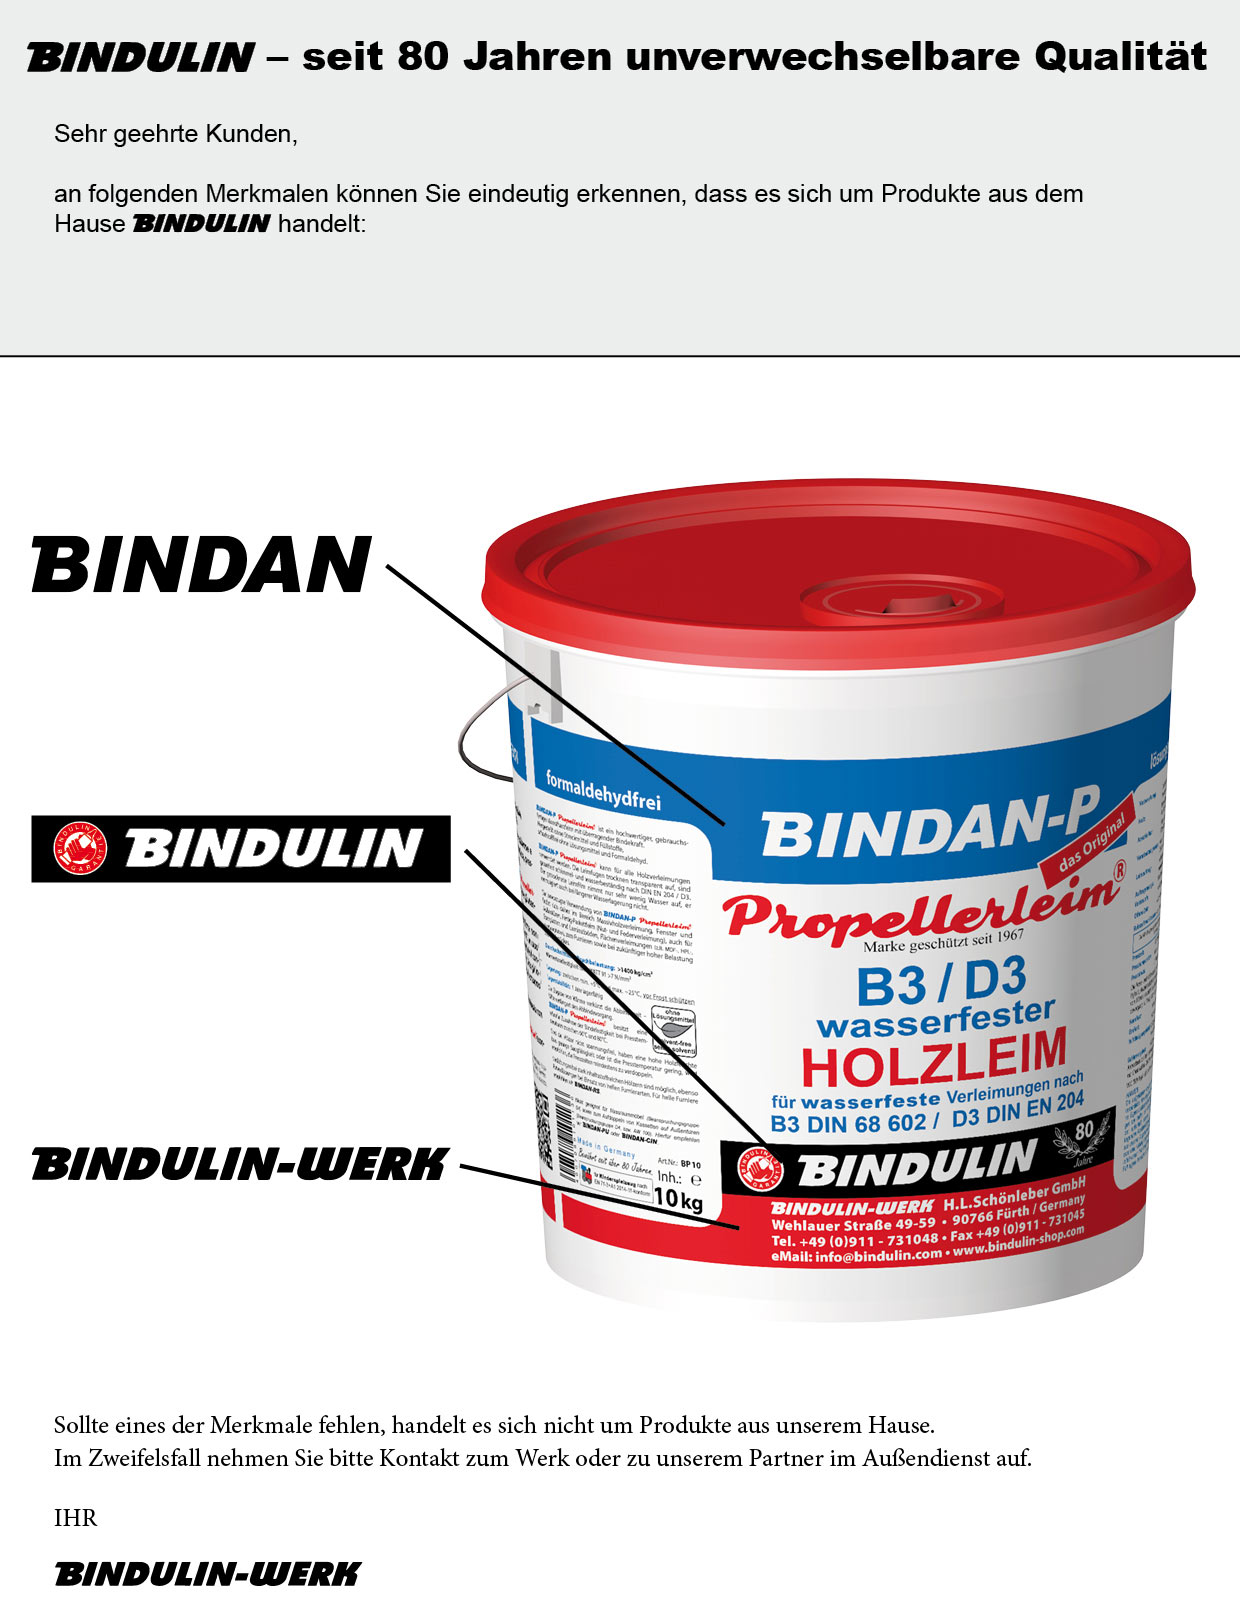 original-bindulin-leim-flyer